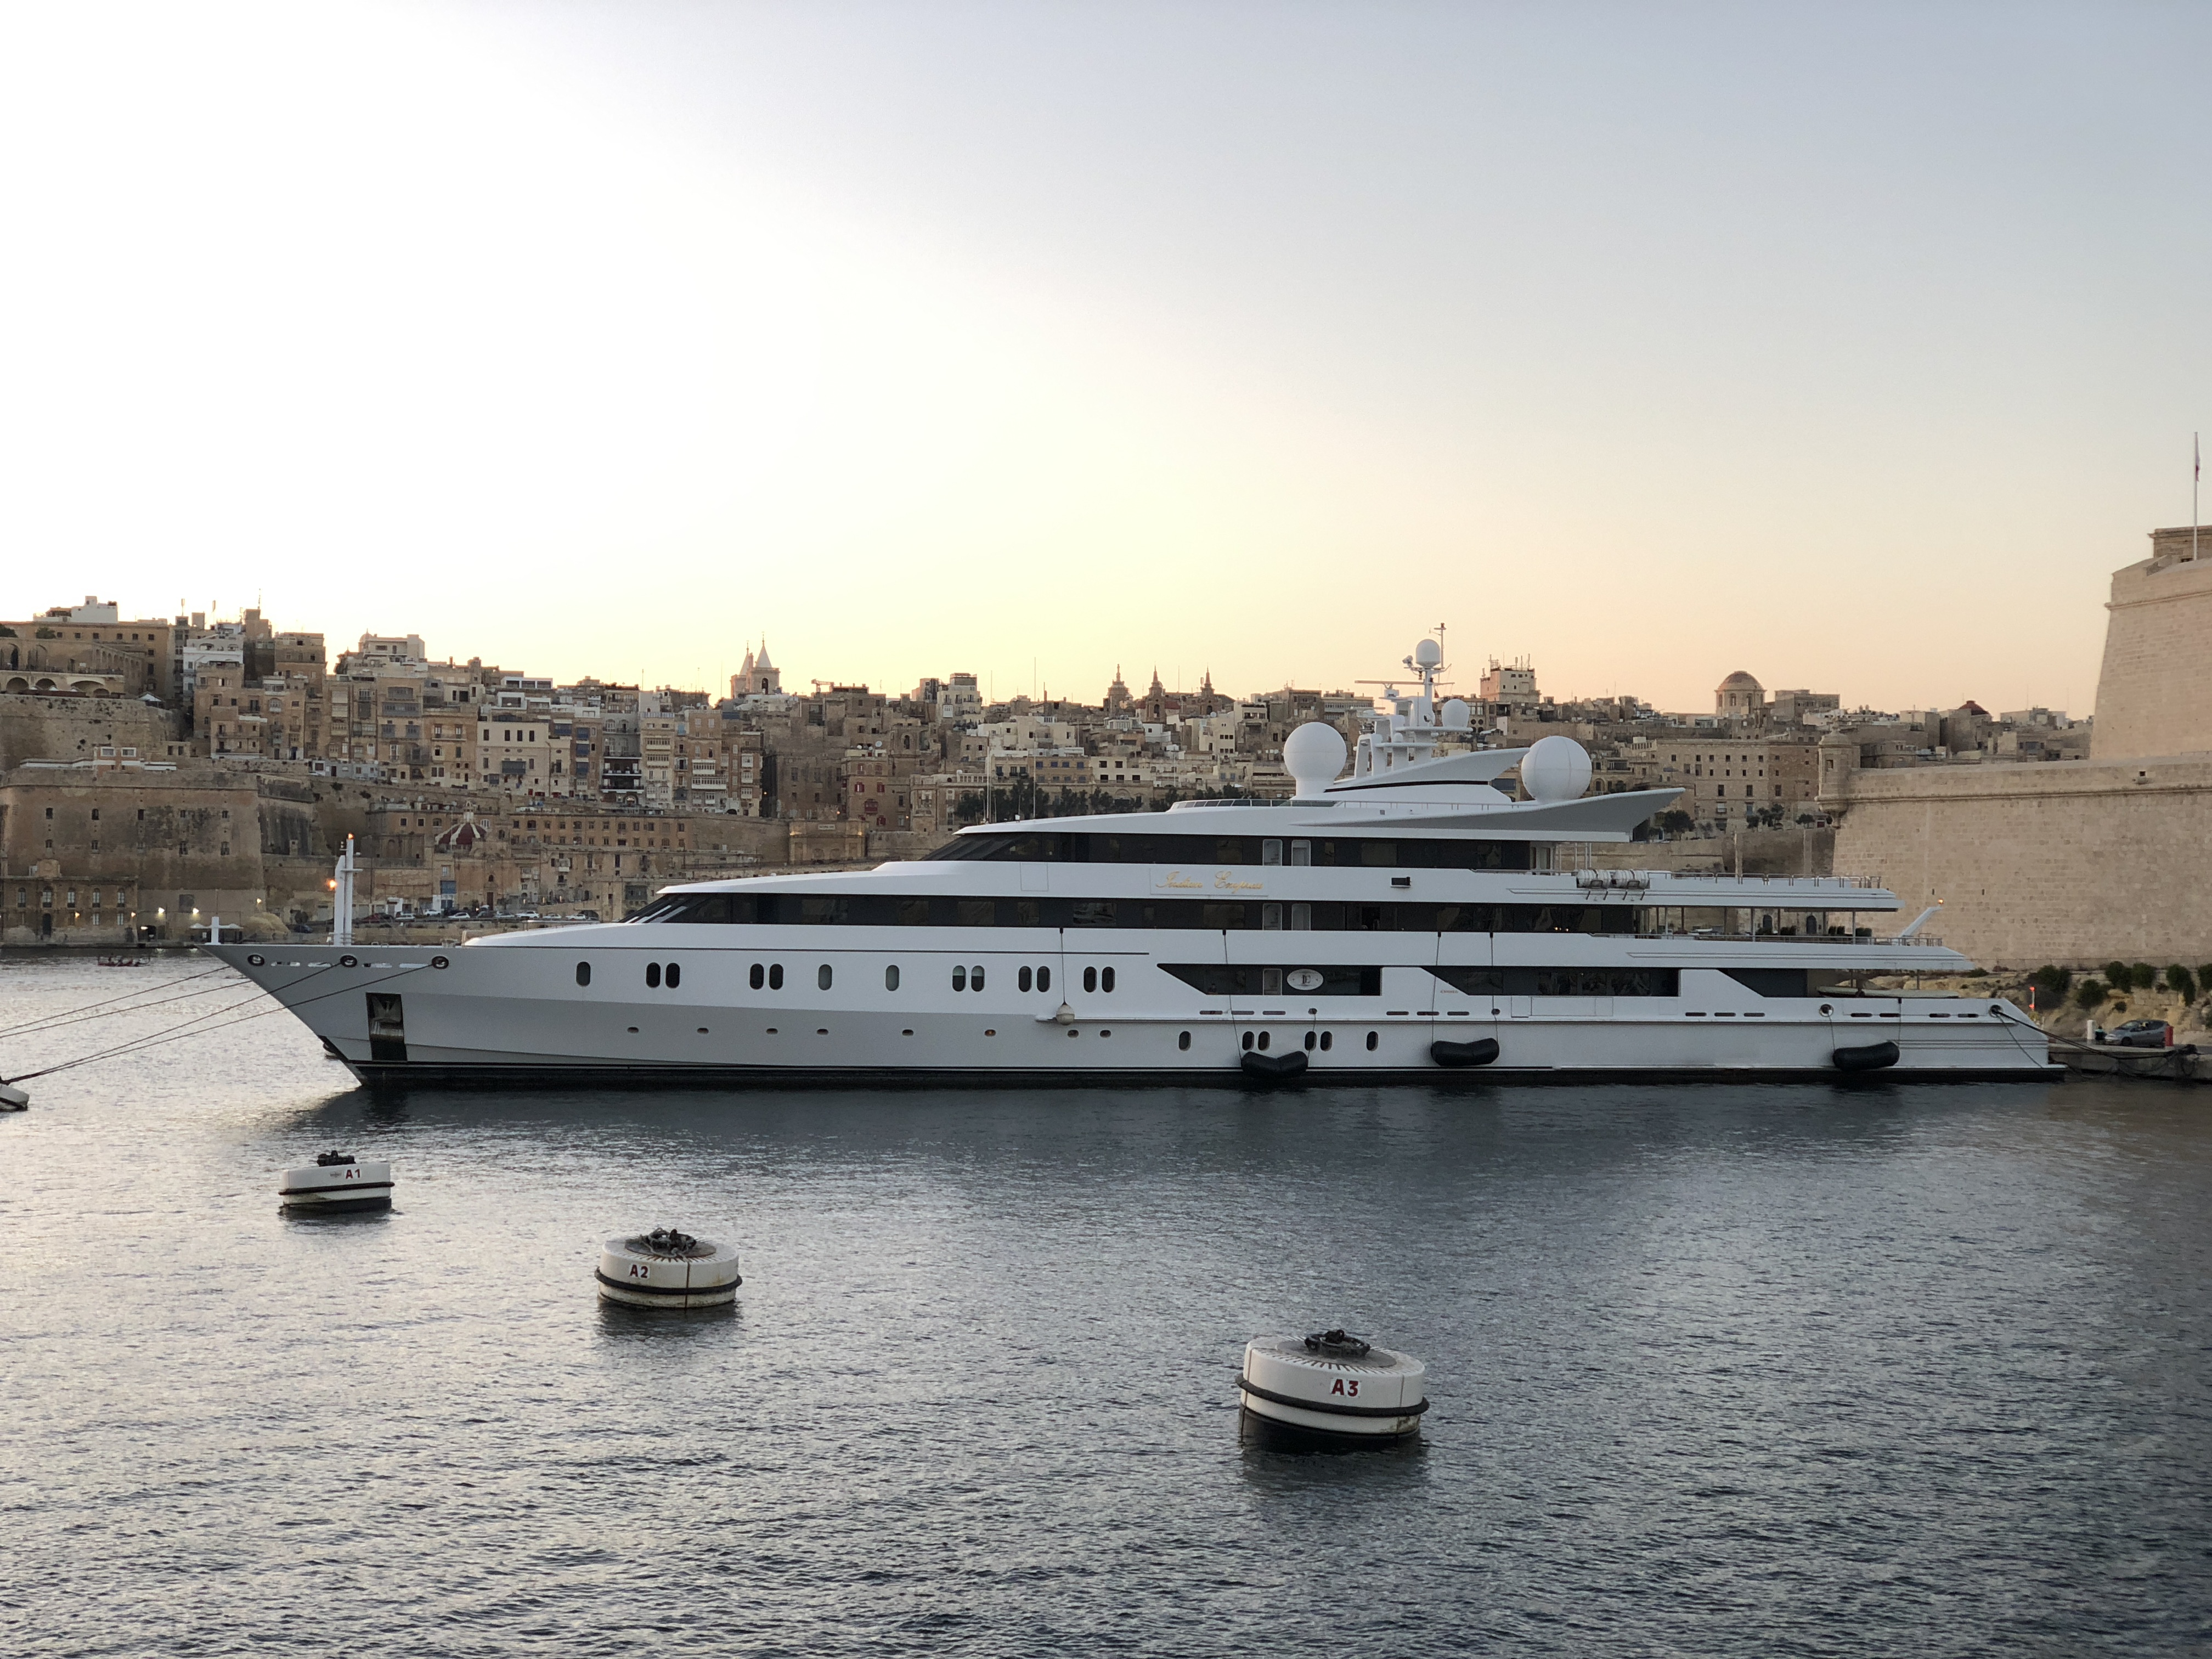 Indian Empress Crew Recovers 1 Million In Salaries Yacht Harbour